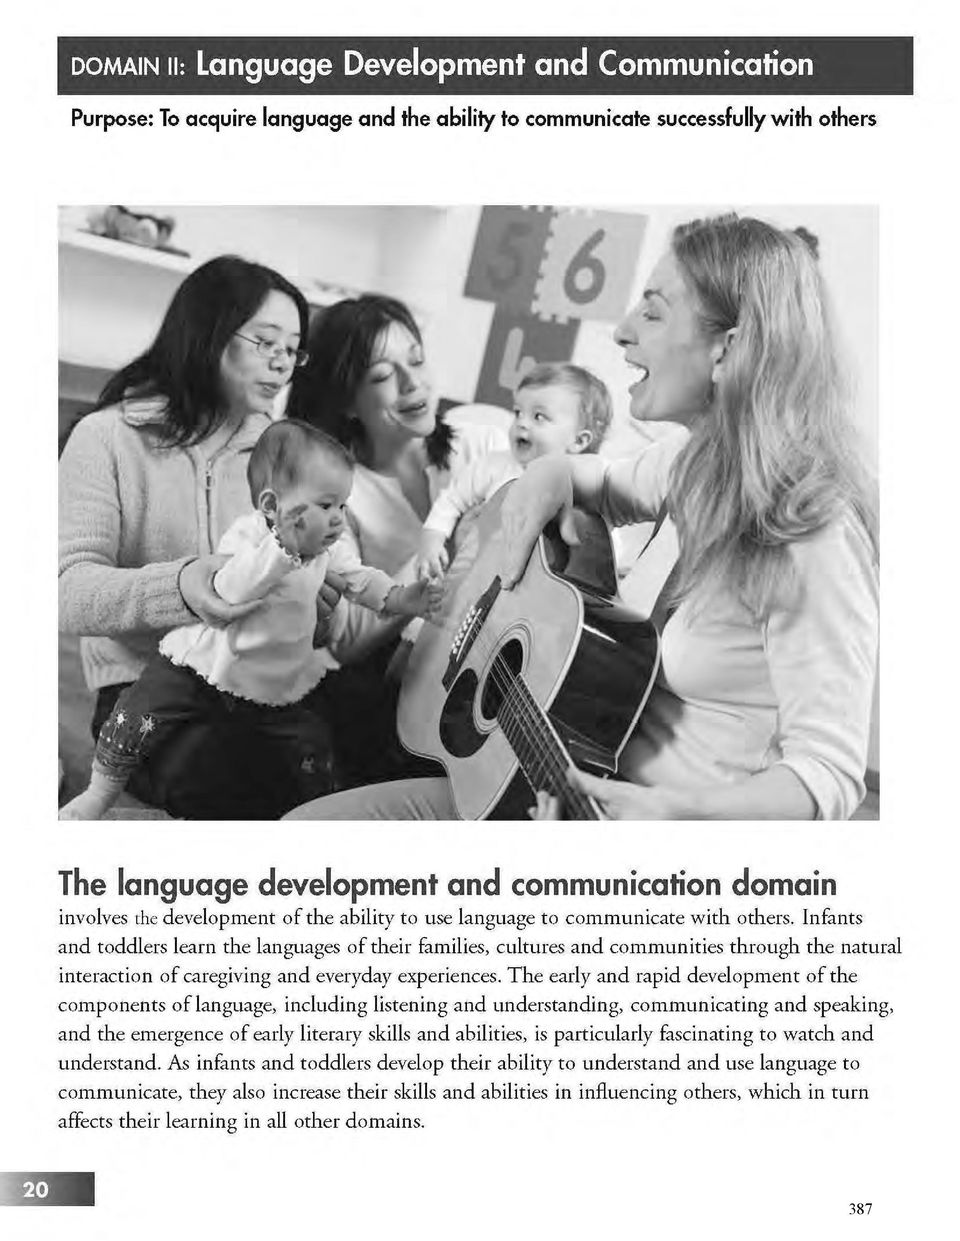 The early and rapid development of the components of language, including listening and understanding, communicating and speaking, and the emergence of early literary skills and abilities, is